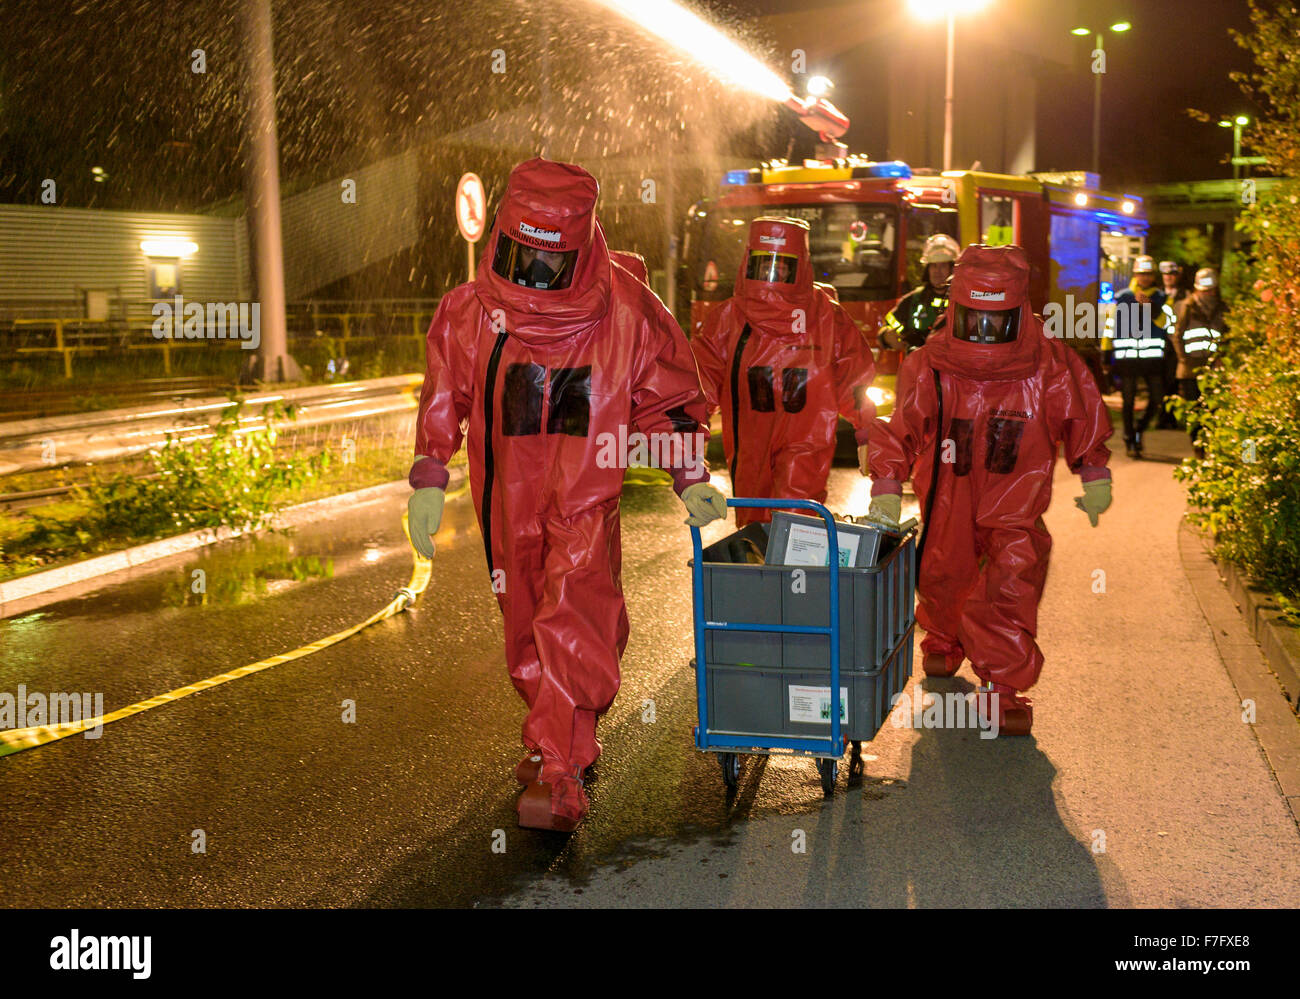 Firefighters in abc protective suits practice for an emergency in a power plant. - Stock Image